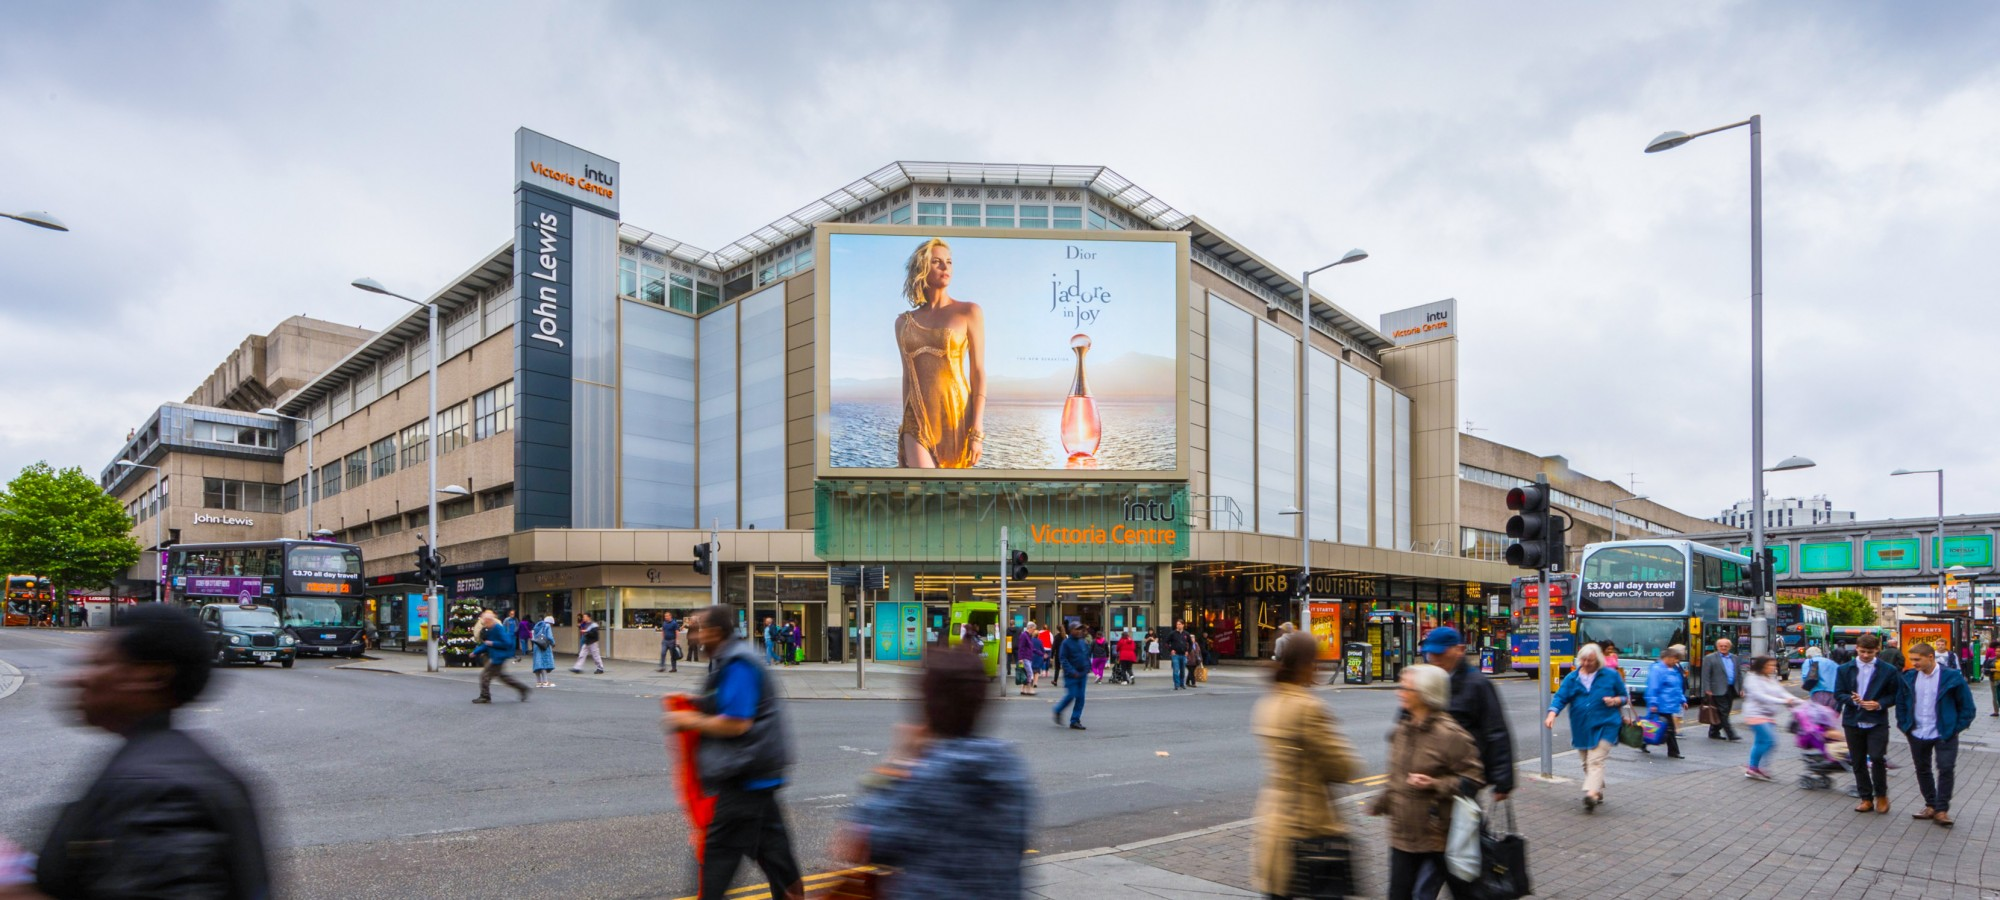 Join The Royal Wedding Celebrations At Nottingham's intu Victoria Centre And intu Broadmarsh